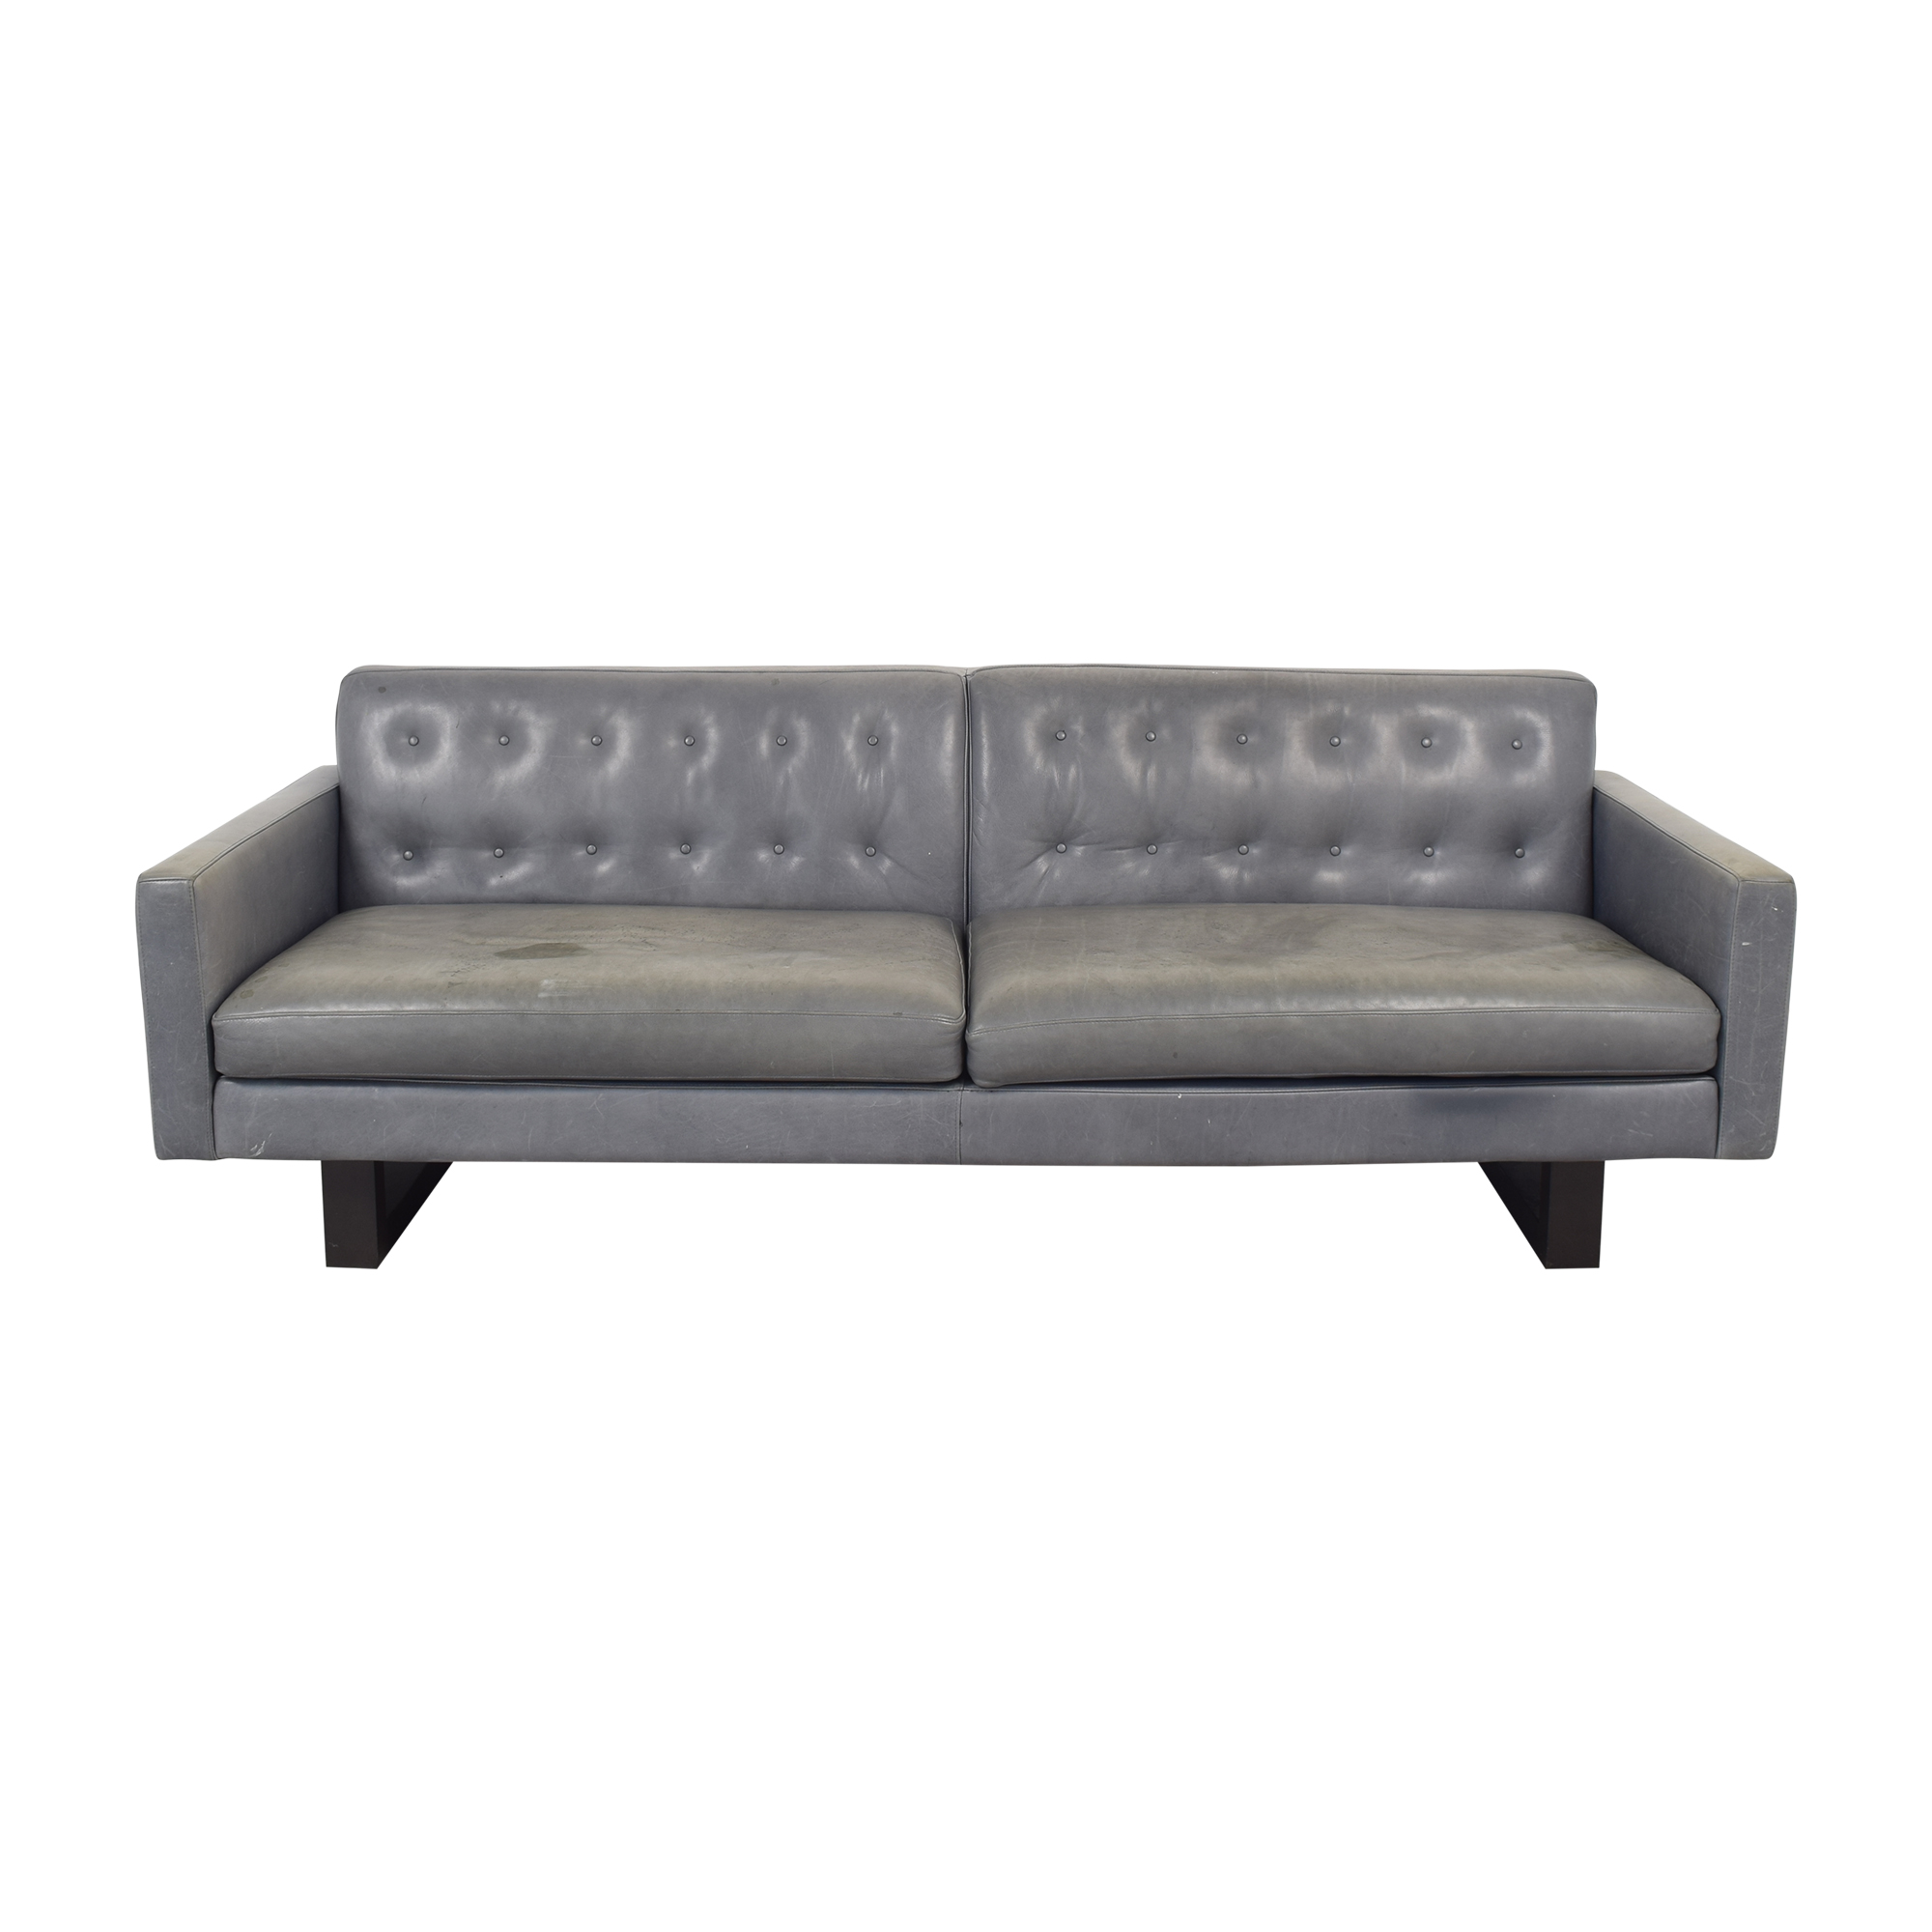 Room & Board Wells Sofa / Classic Sofas